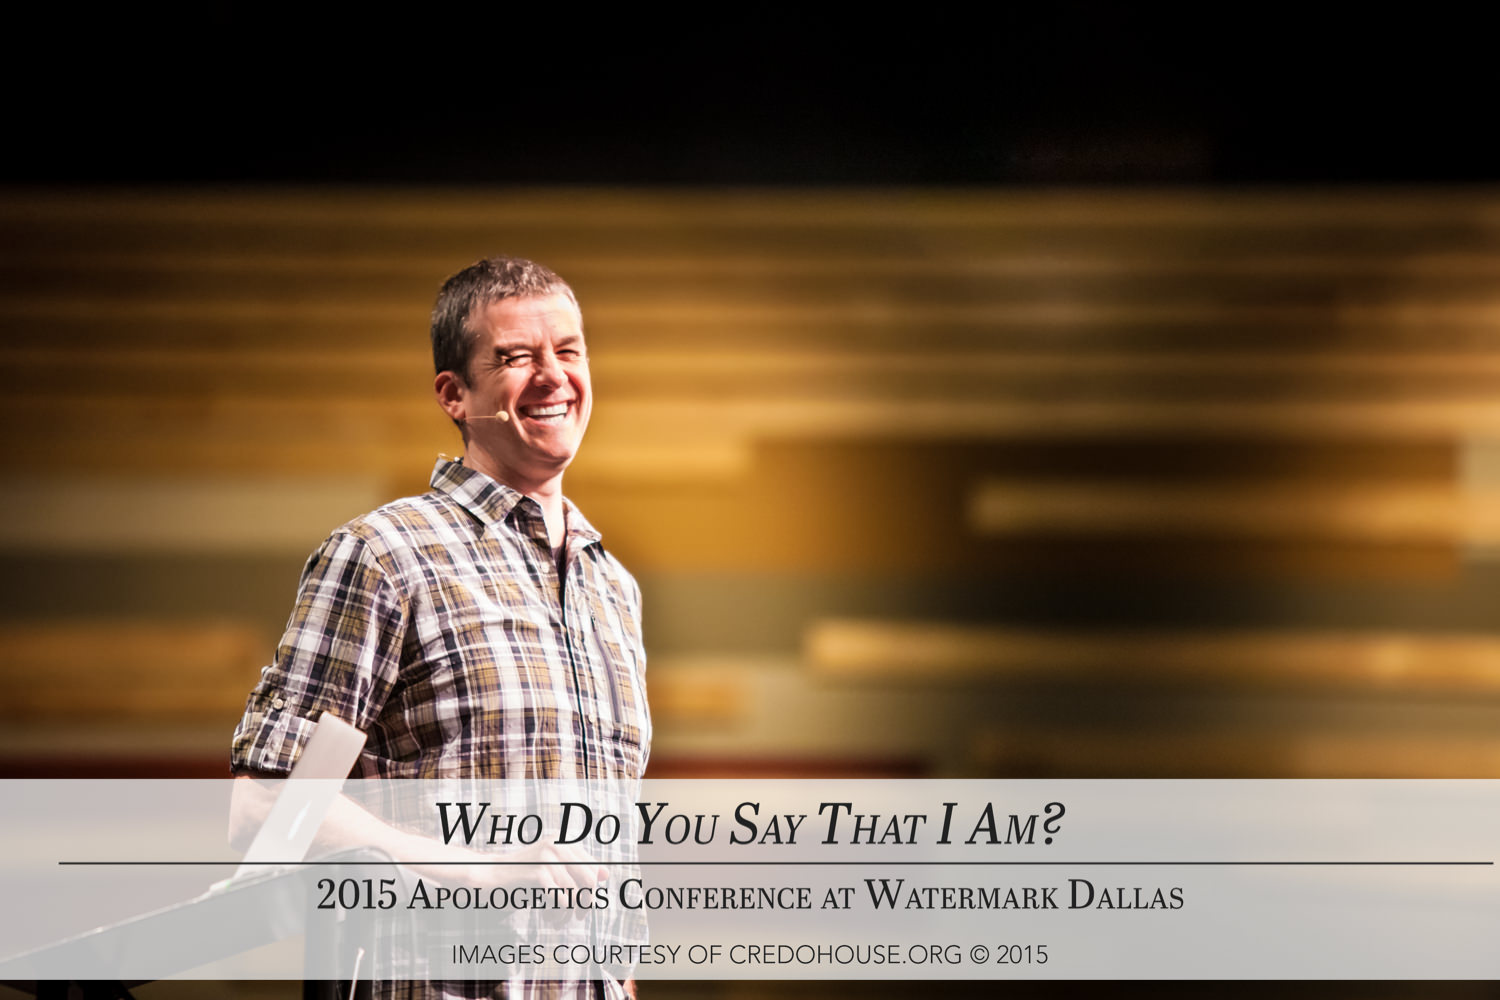 watermark-who-do-you-say-that-i-am-3249